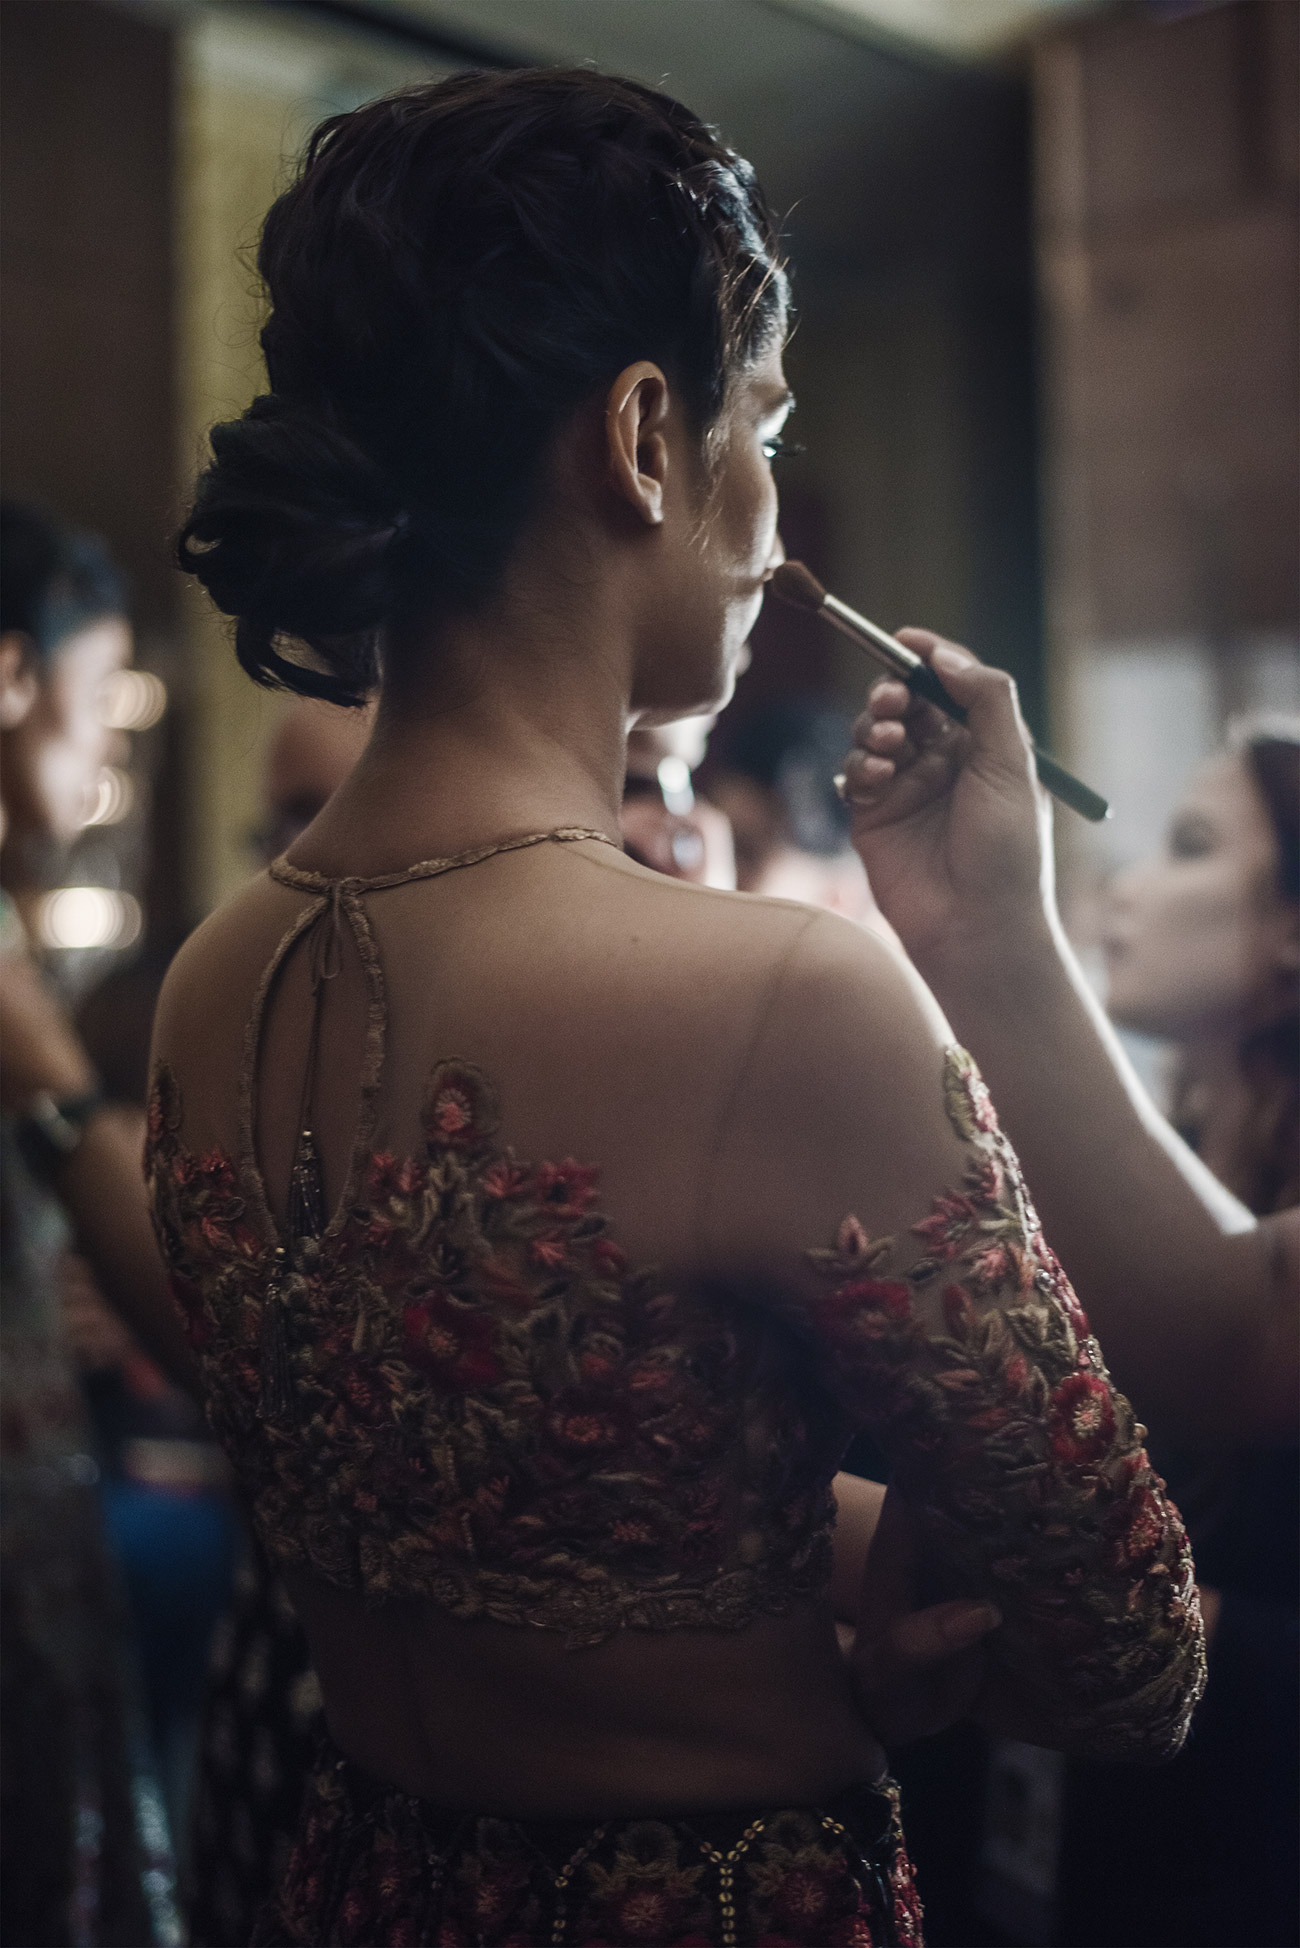 Backstage FDCI India Couture Week 2016 Photo by RAWKY KSH 2